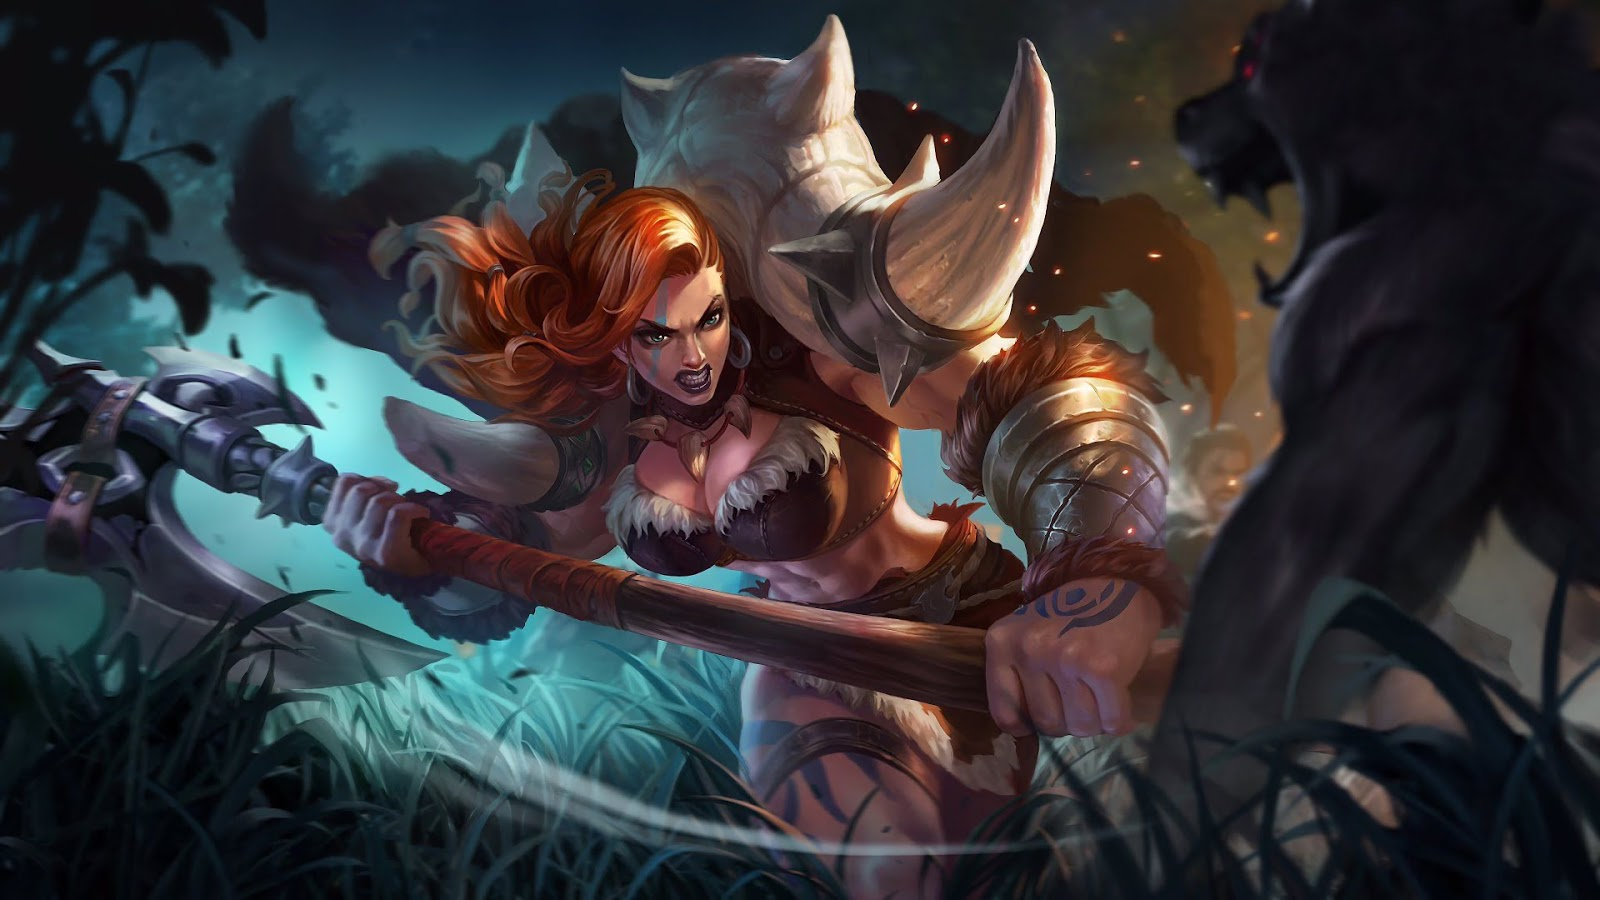 Wallpaper Hilda Power of Megalith Skin Mobile Legends HD for PC